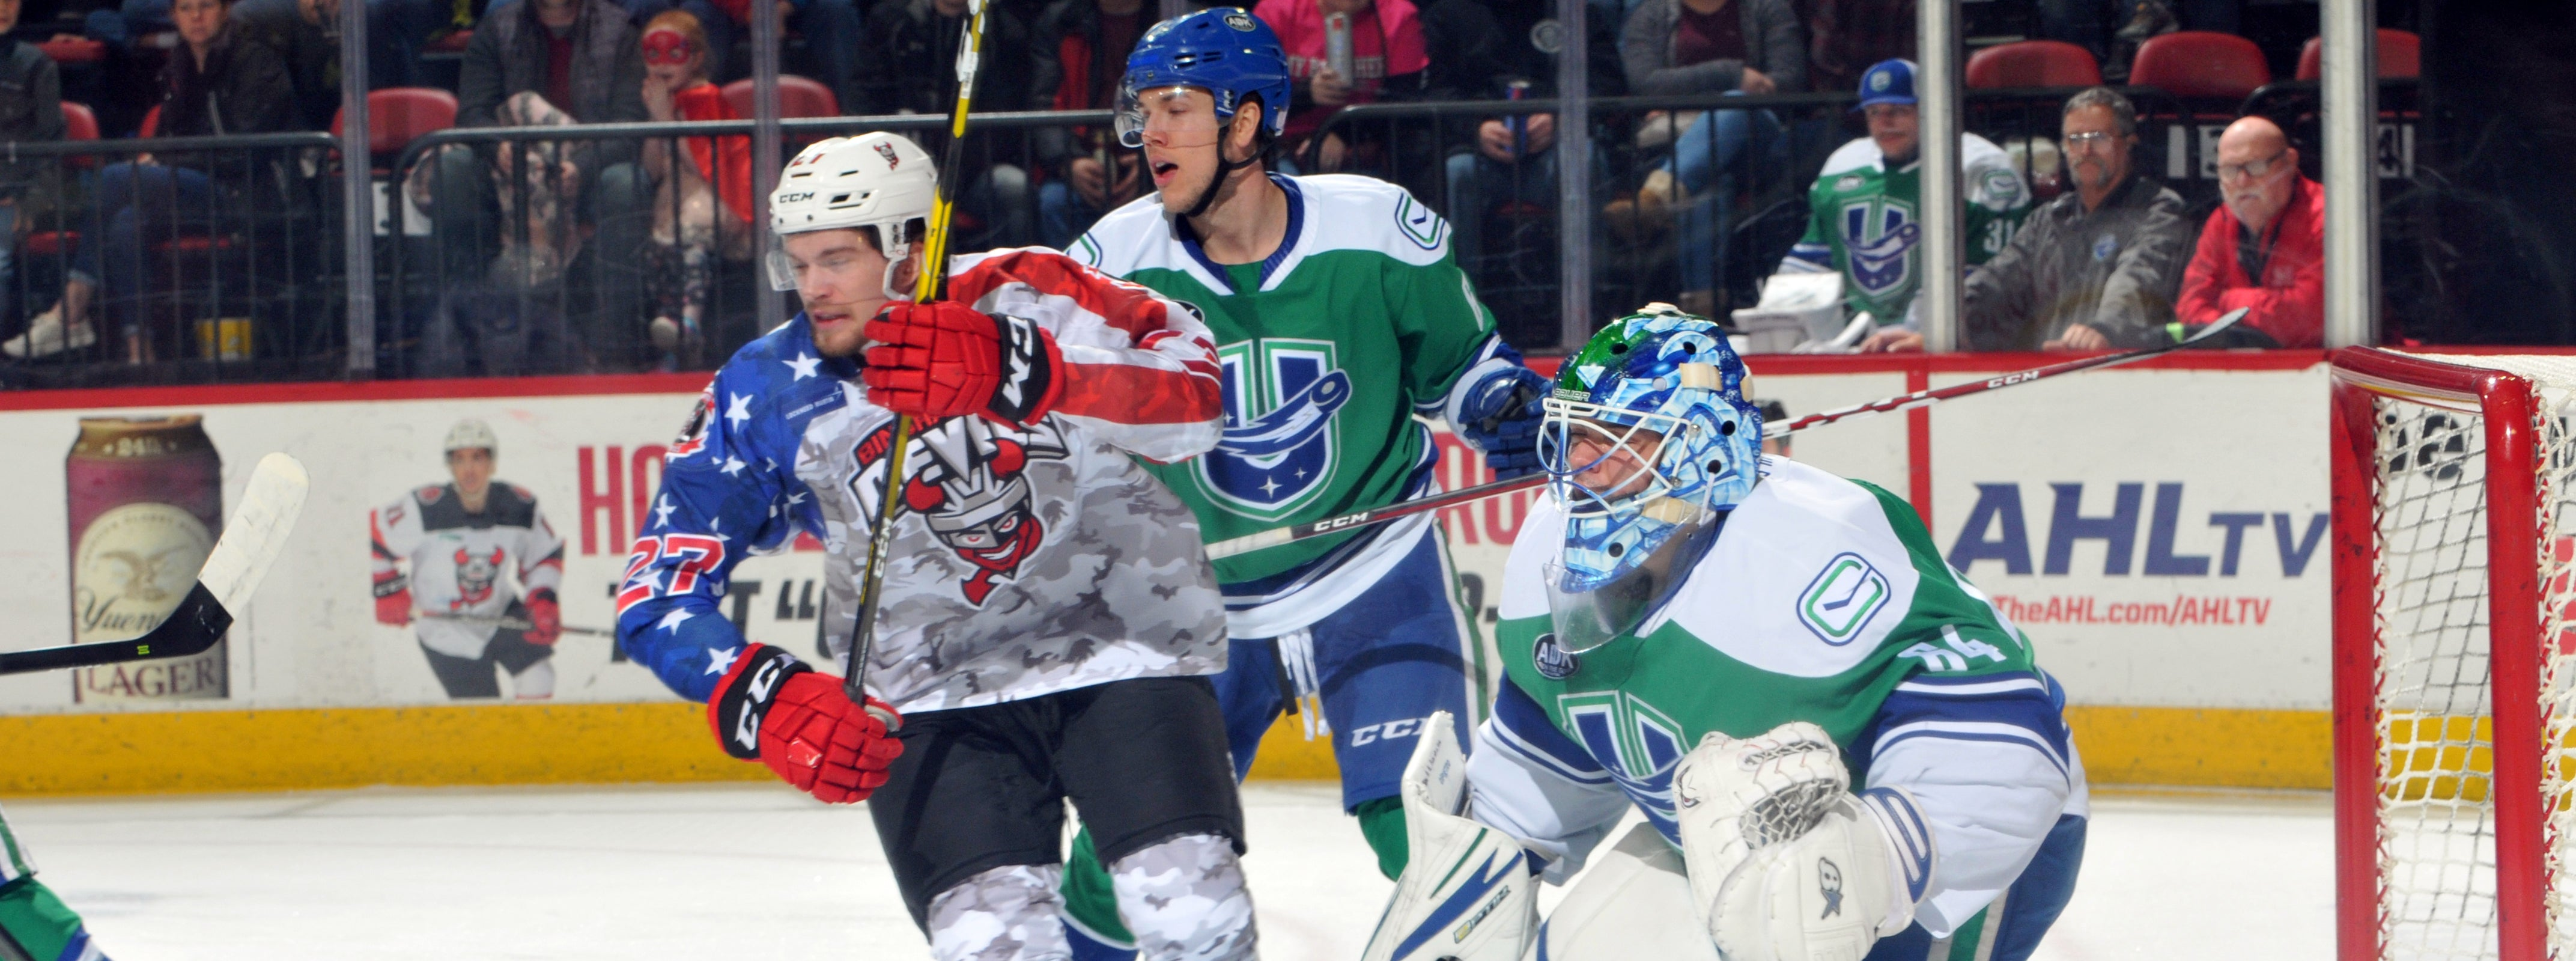 COMETS COME FROM BEHIND FOR DRAMATIC OVERTIME TRIUMPH